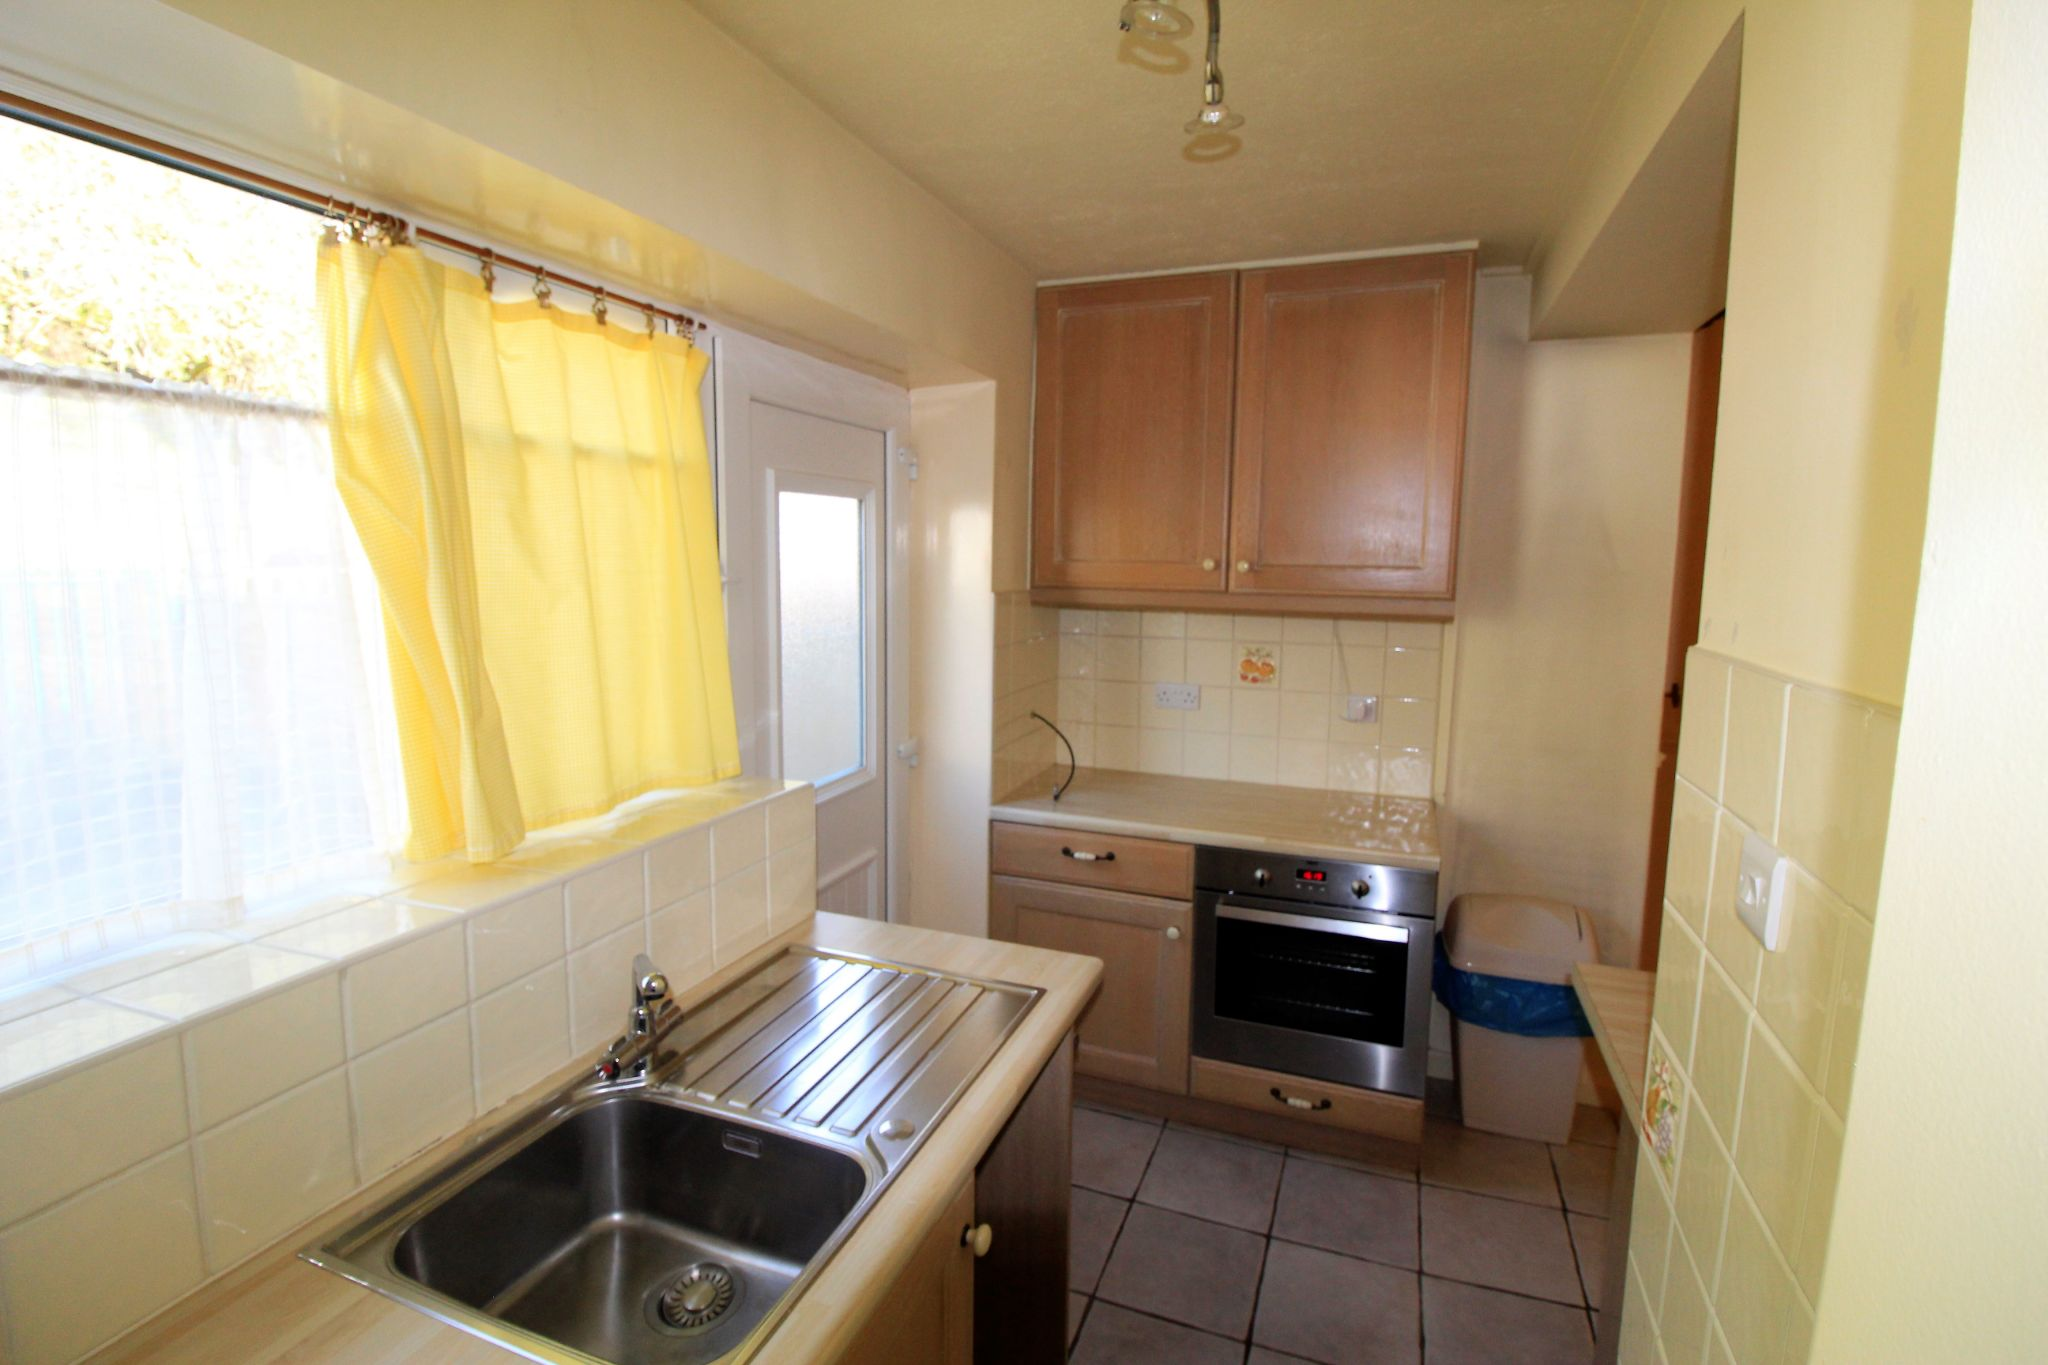 2 bedroom mid terraced house SSTC in Brighouse - Photograph 11